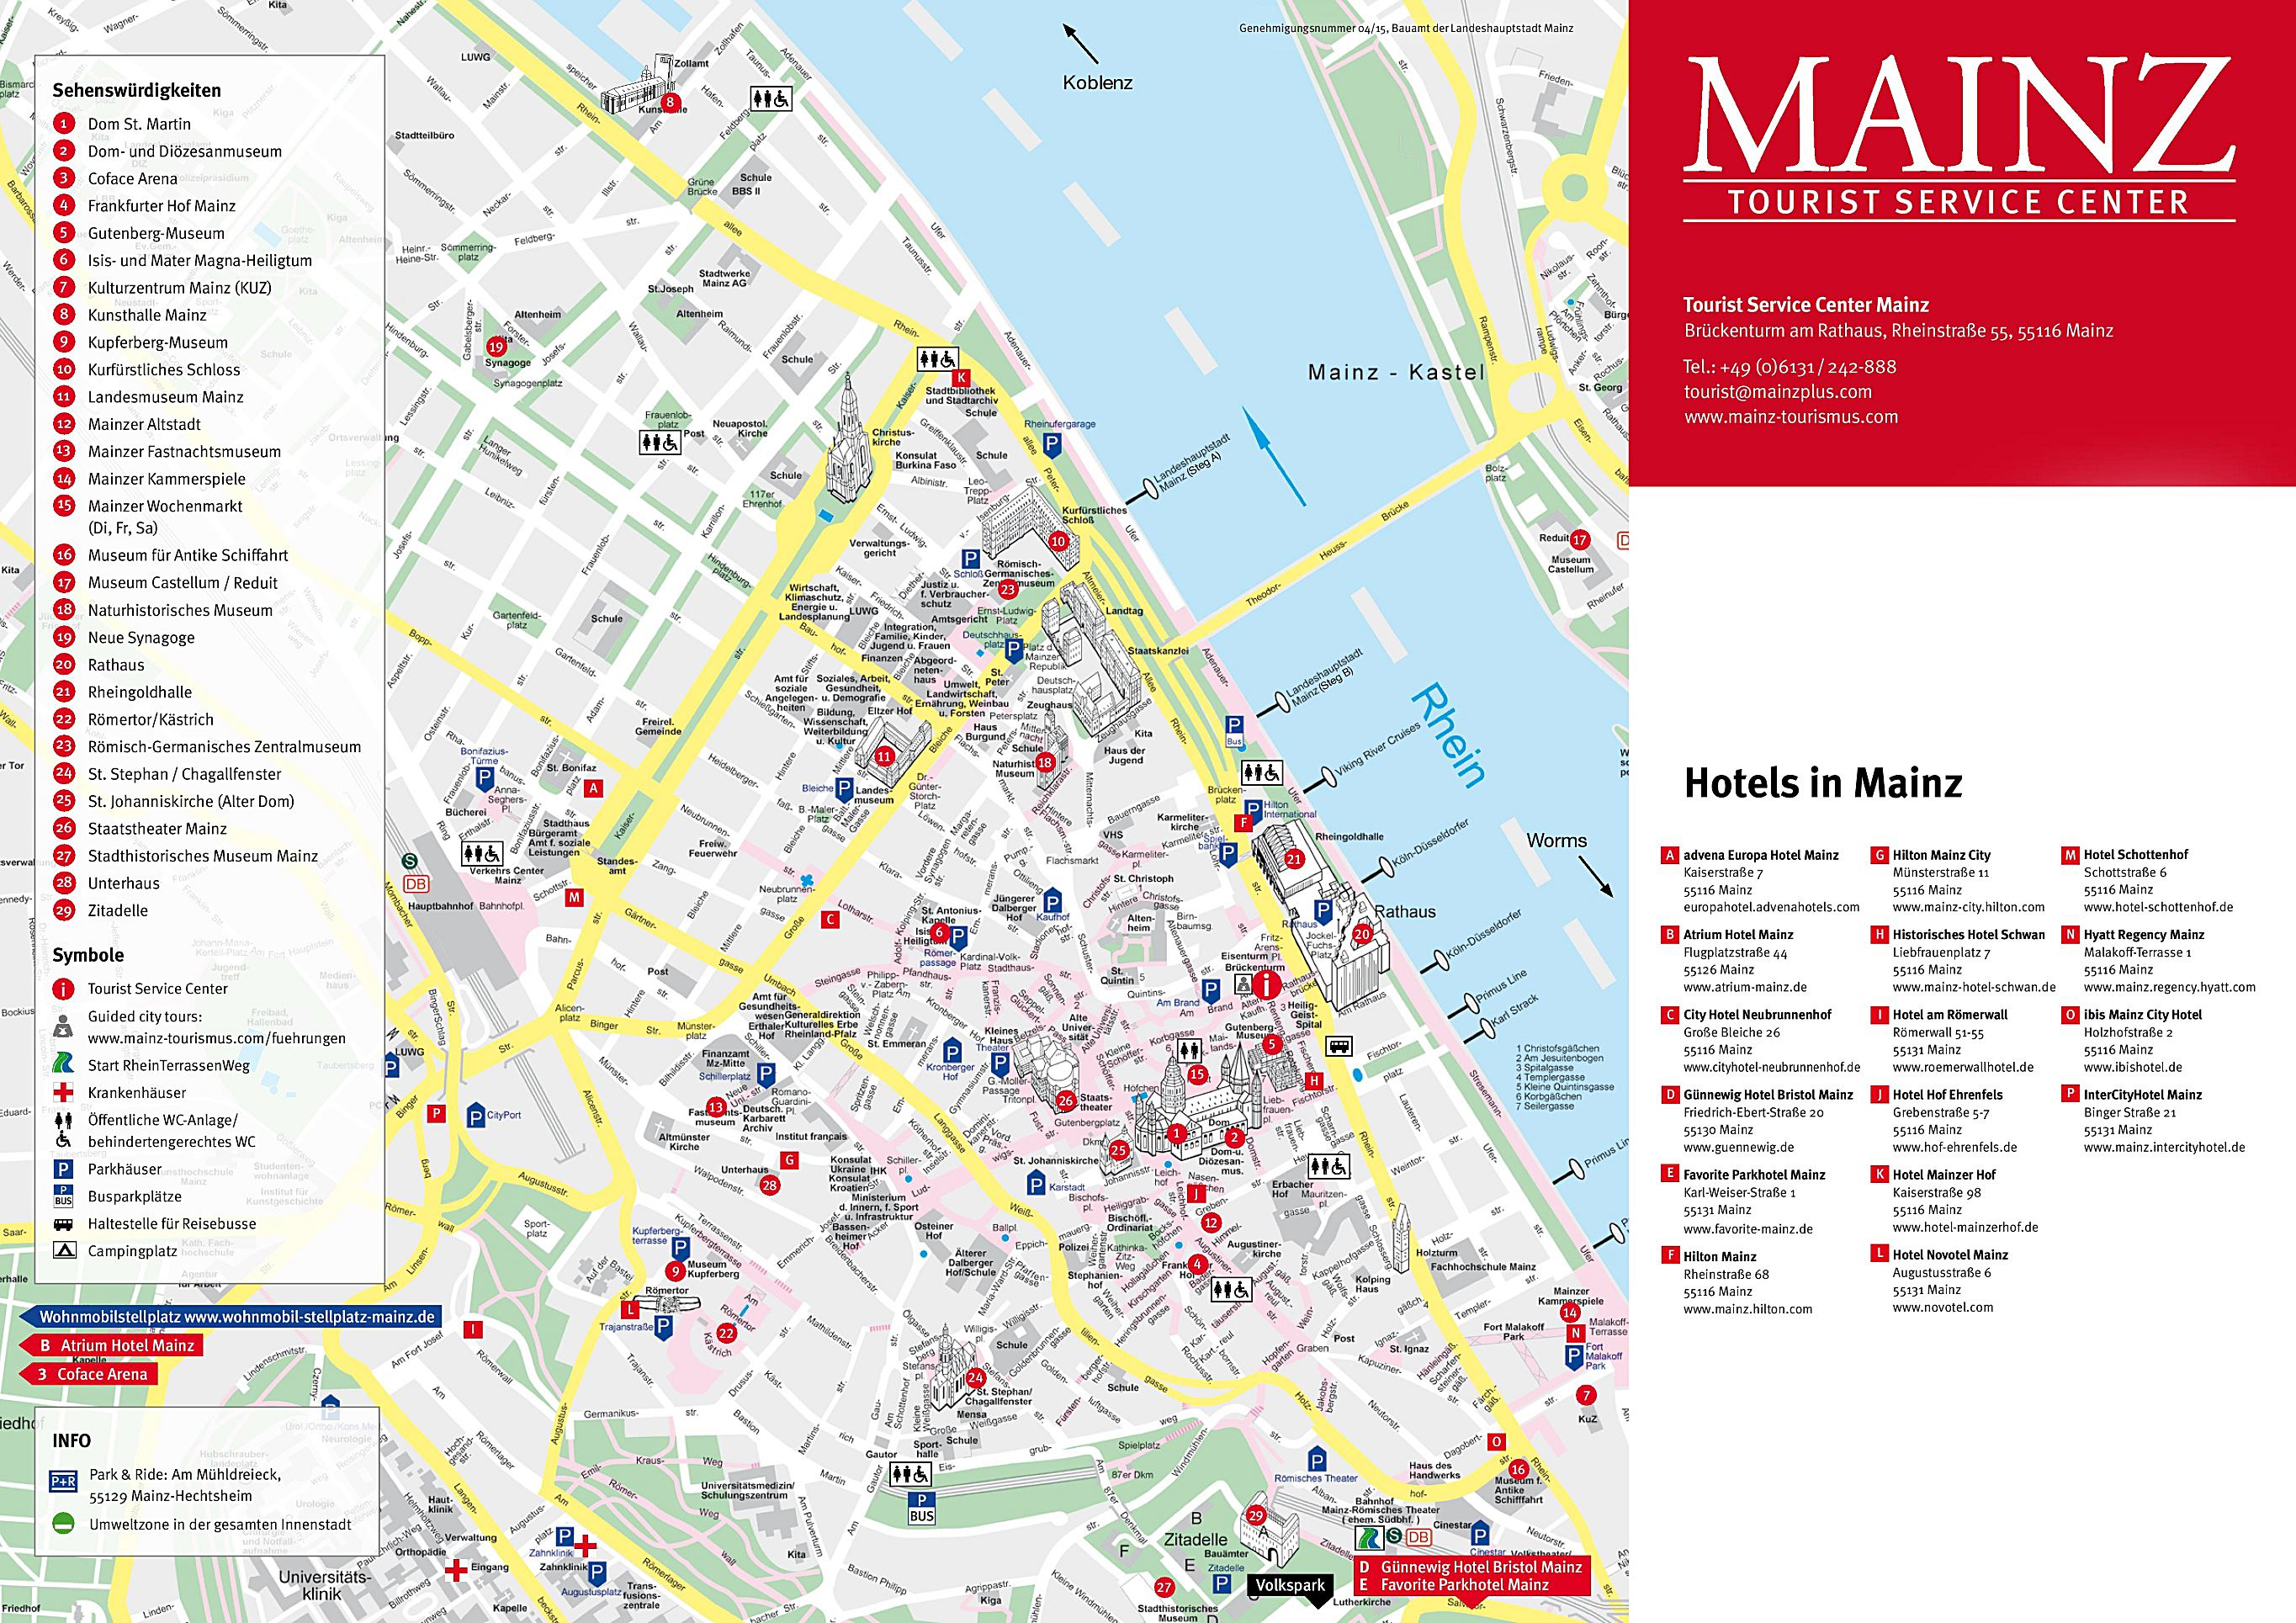 Maps Saarbrücken Large Mainz Maps For Free Download And Print High Resolution And